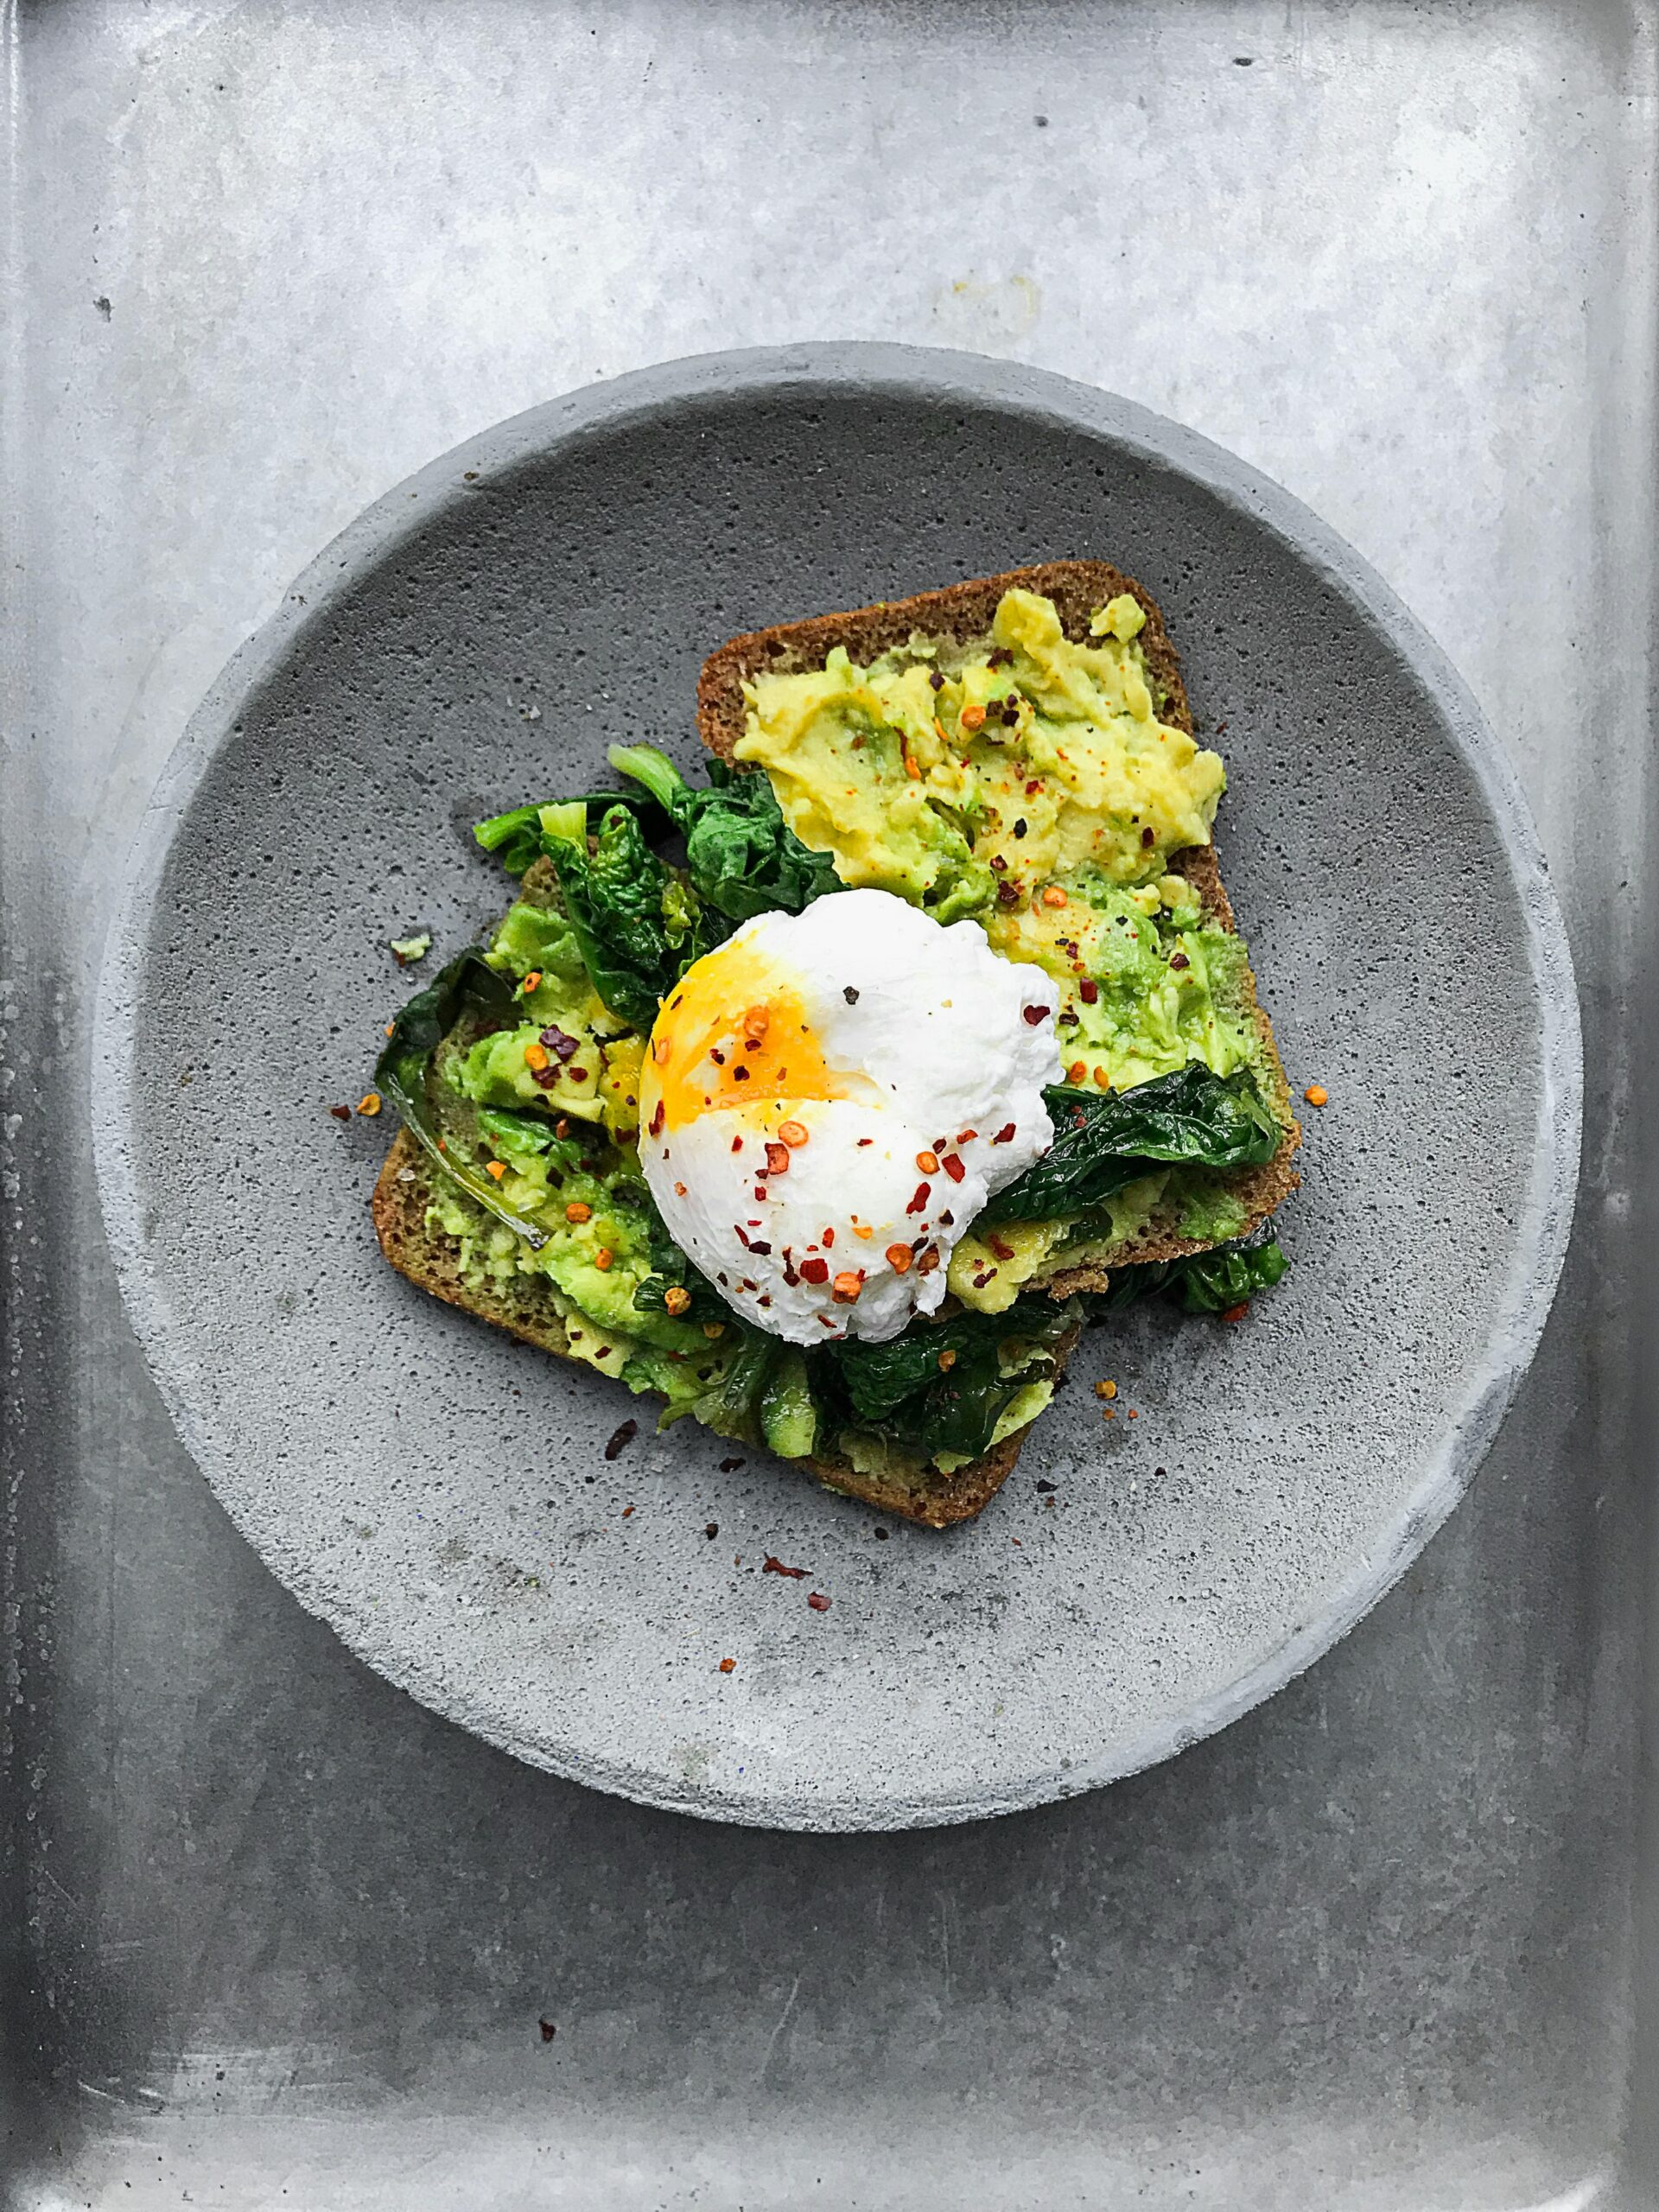 Why Is Breakfast The Most Important Meal Of The Day?